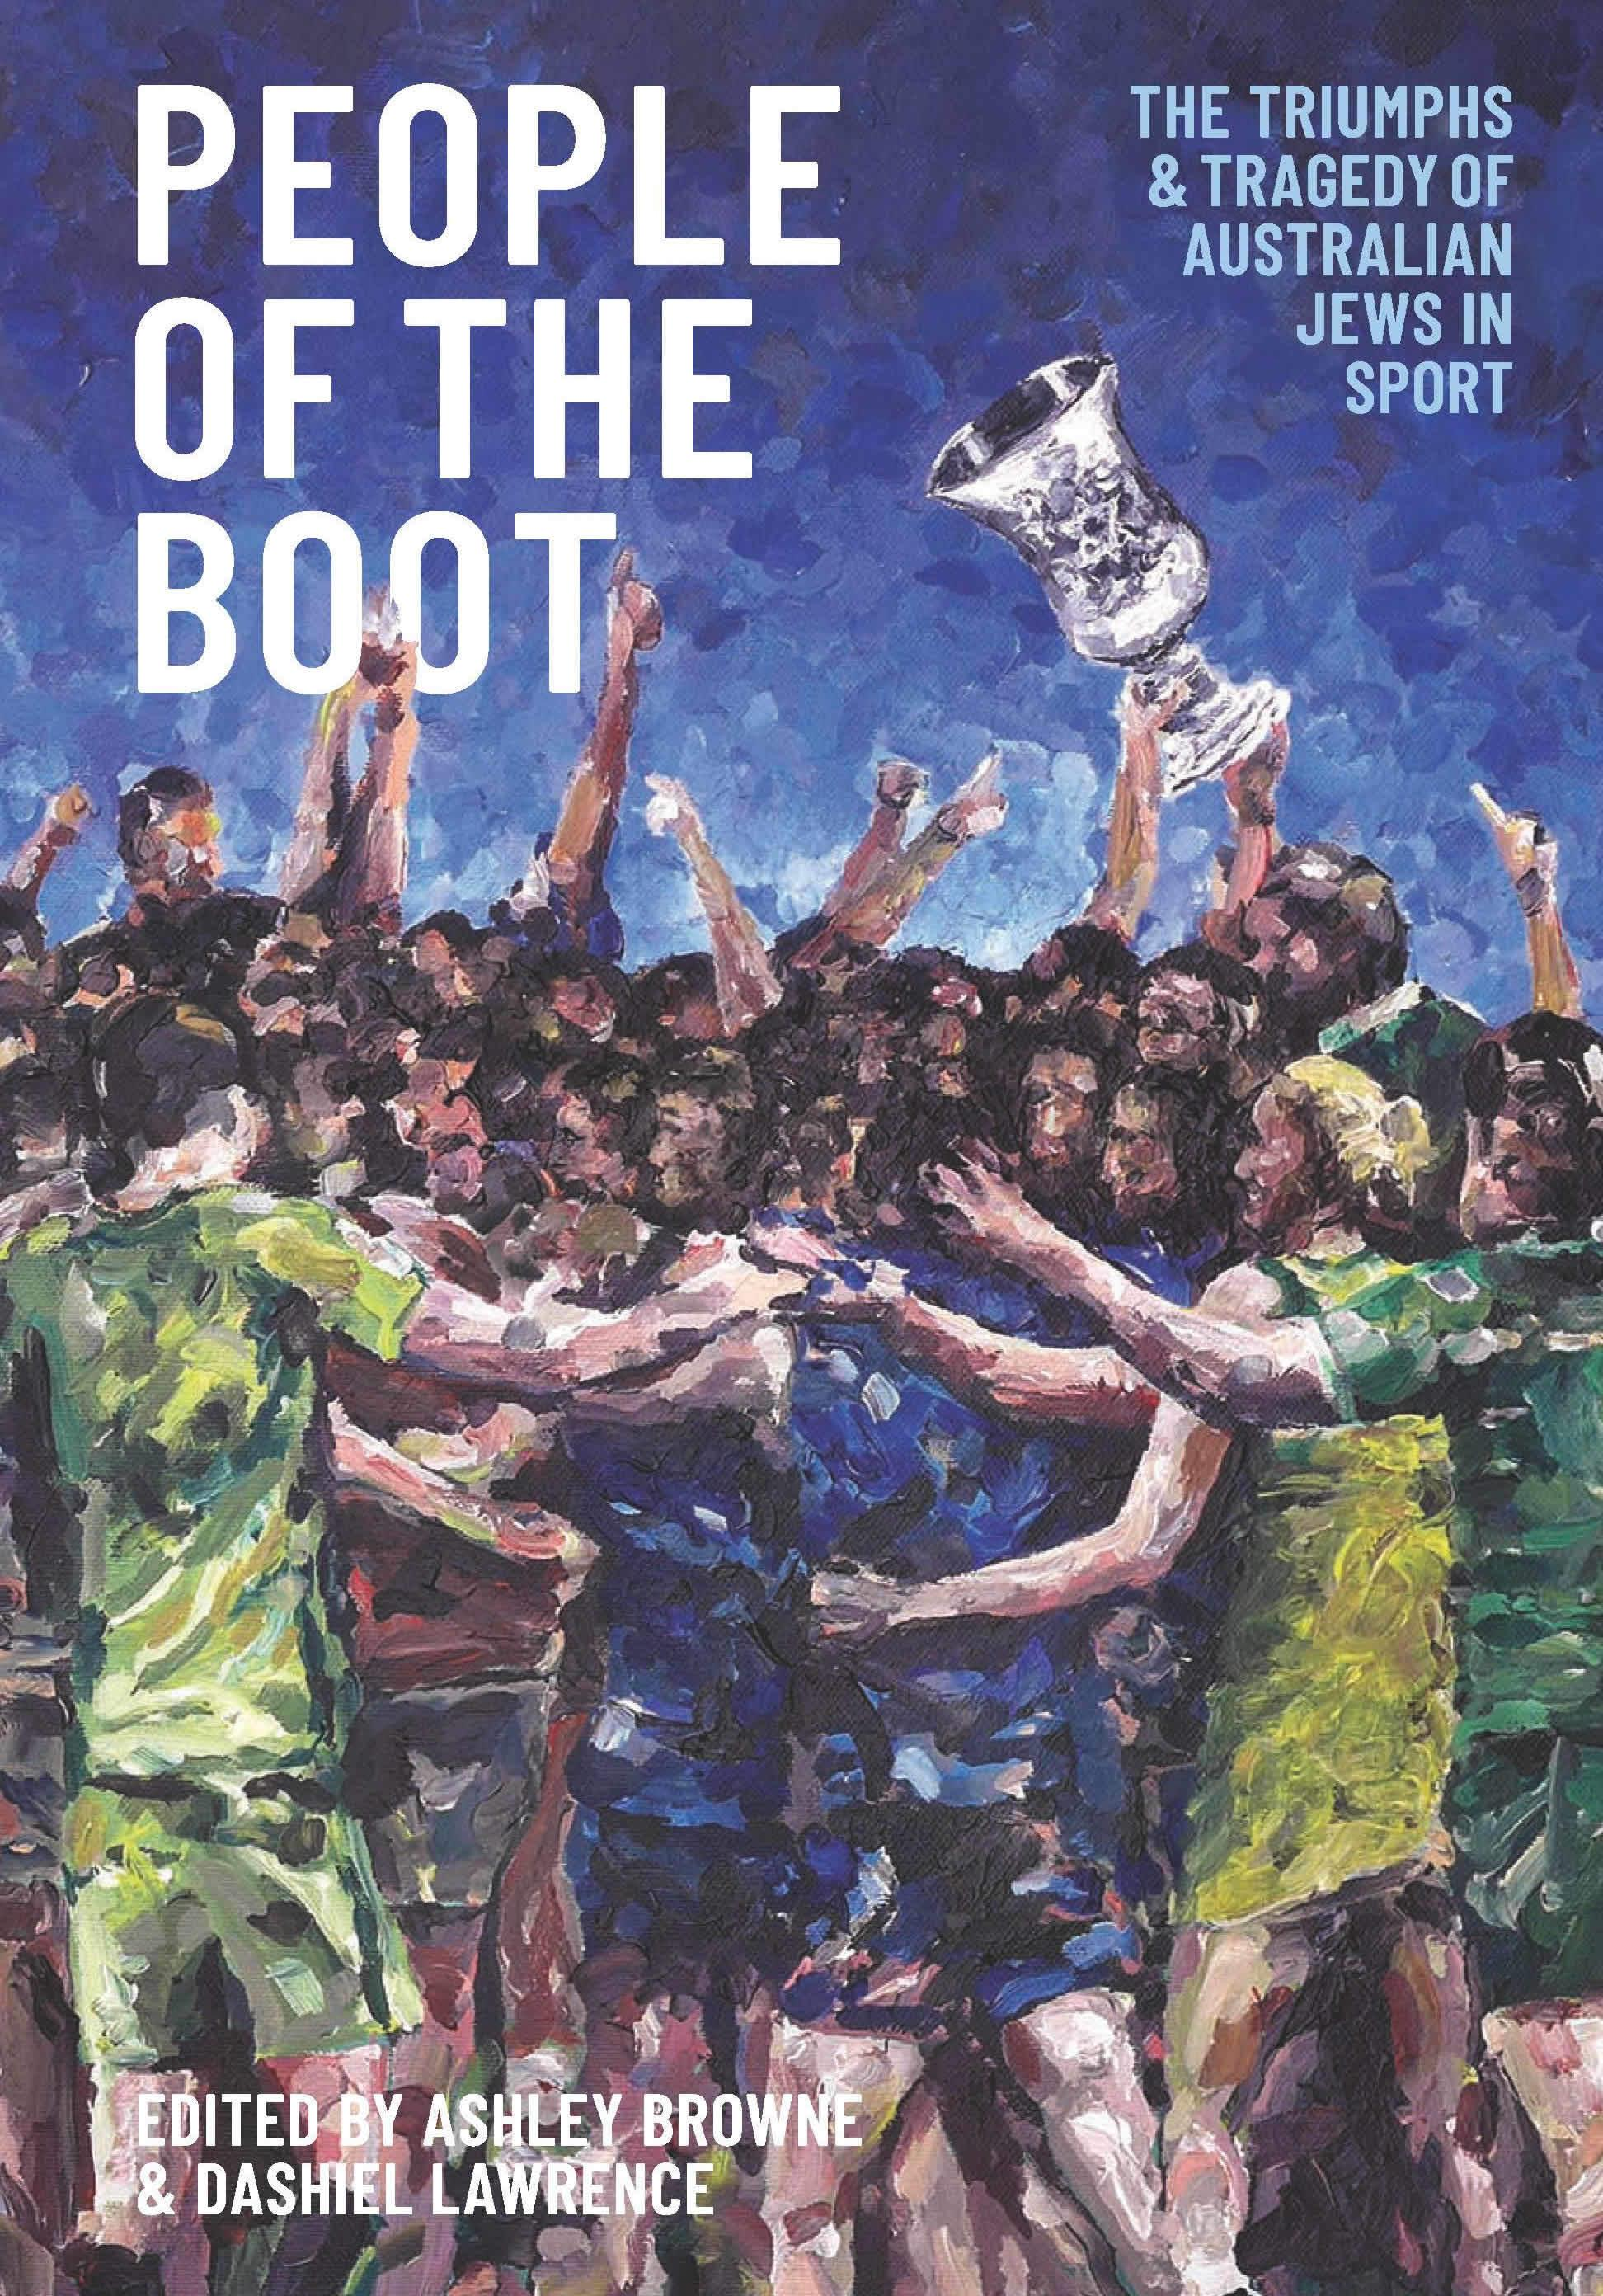 People of the Boot: The Triumphs and Tragedy of Australian Jews in Sport